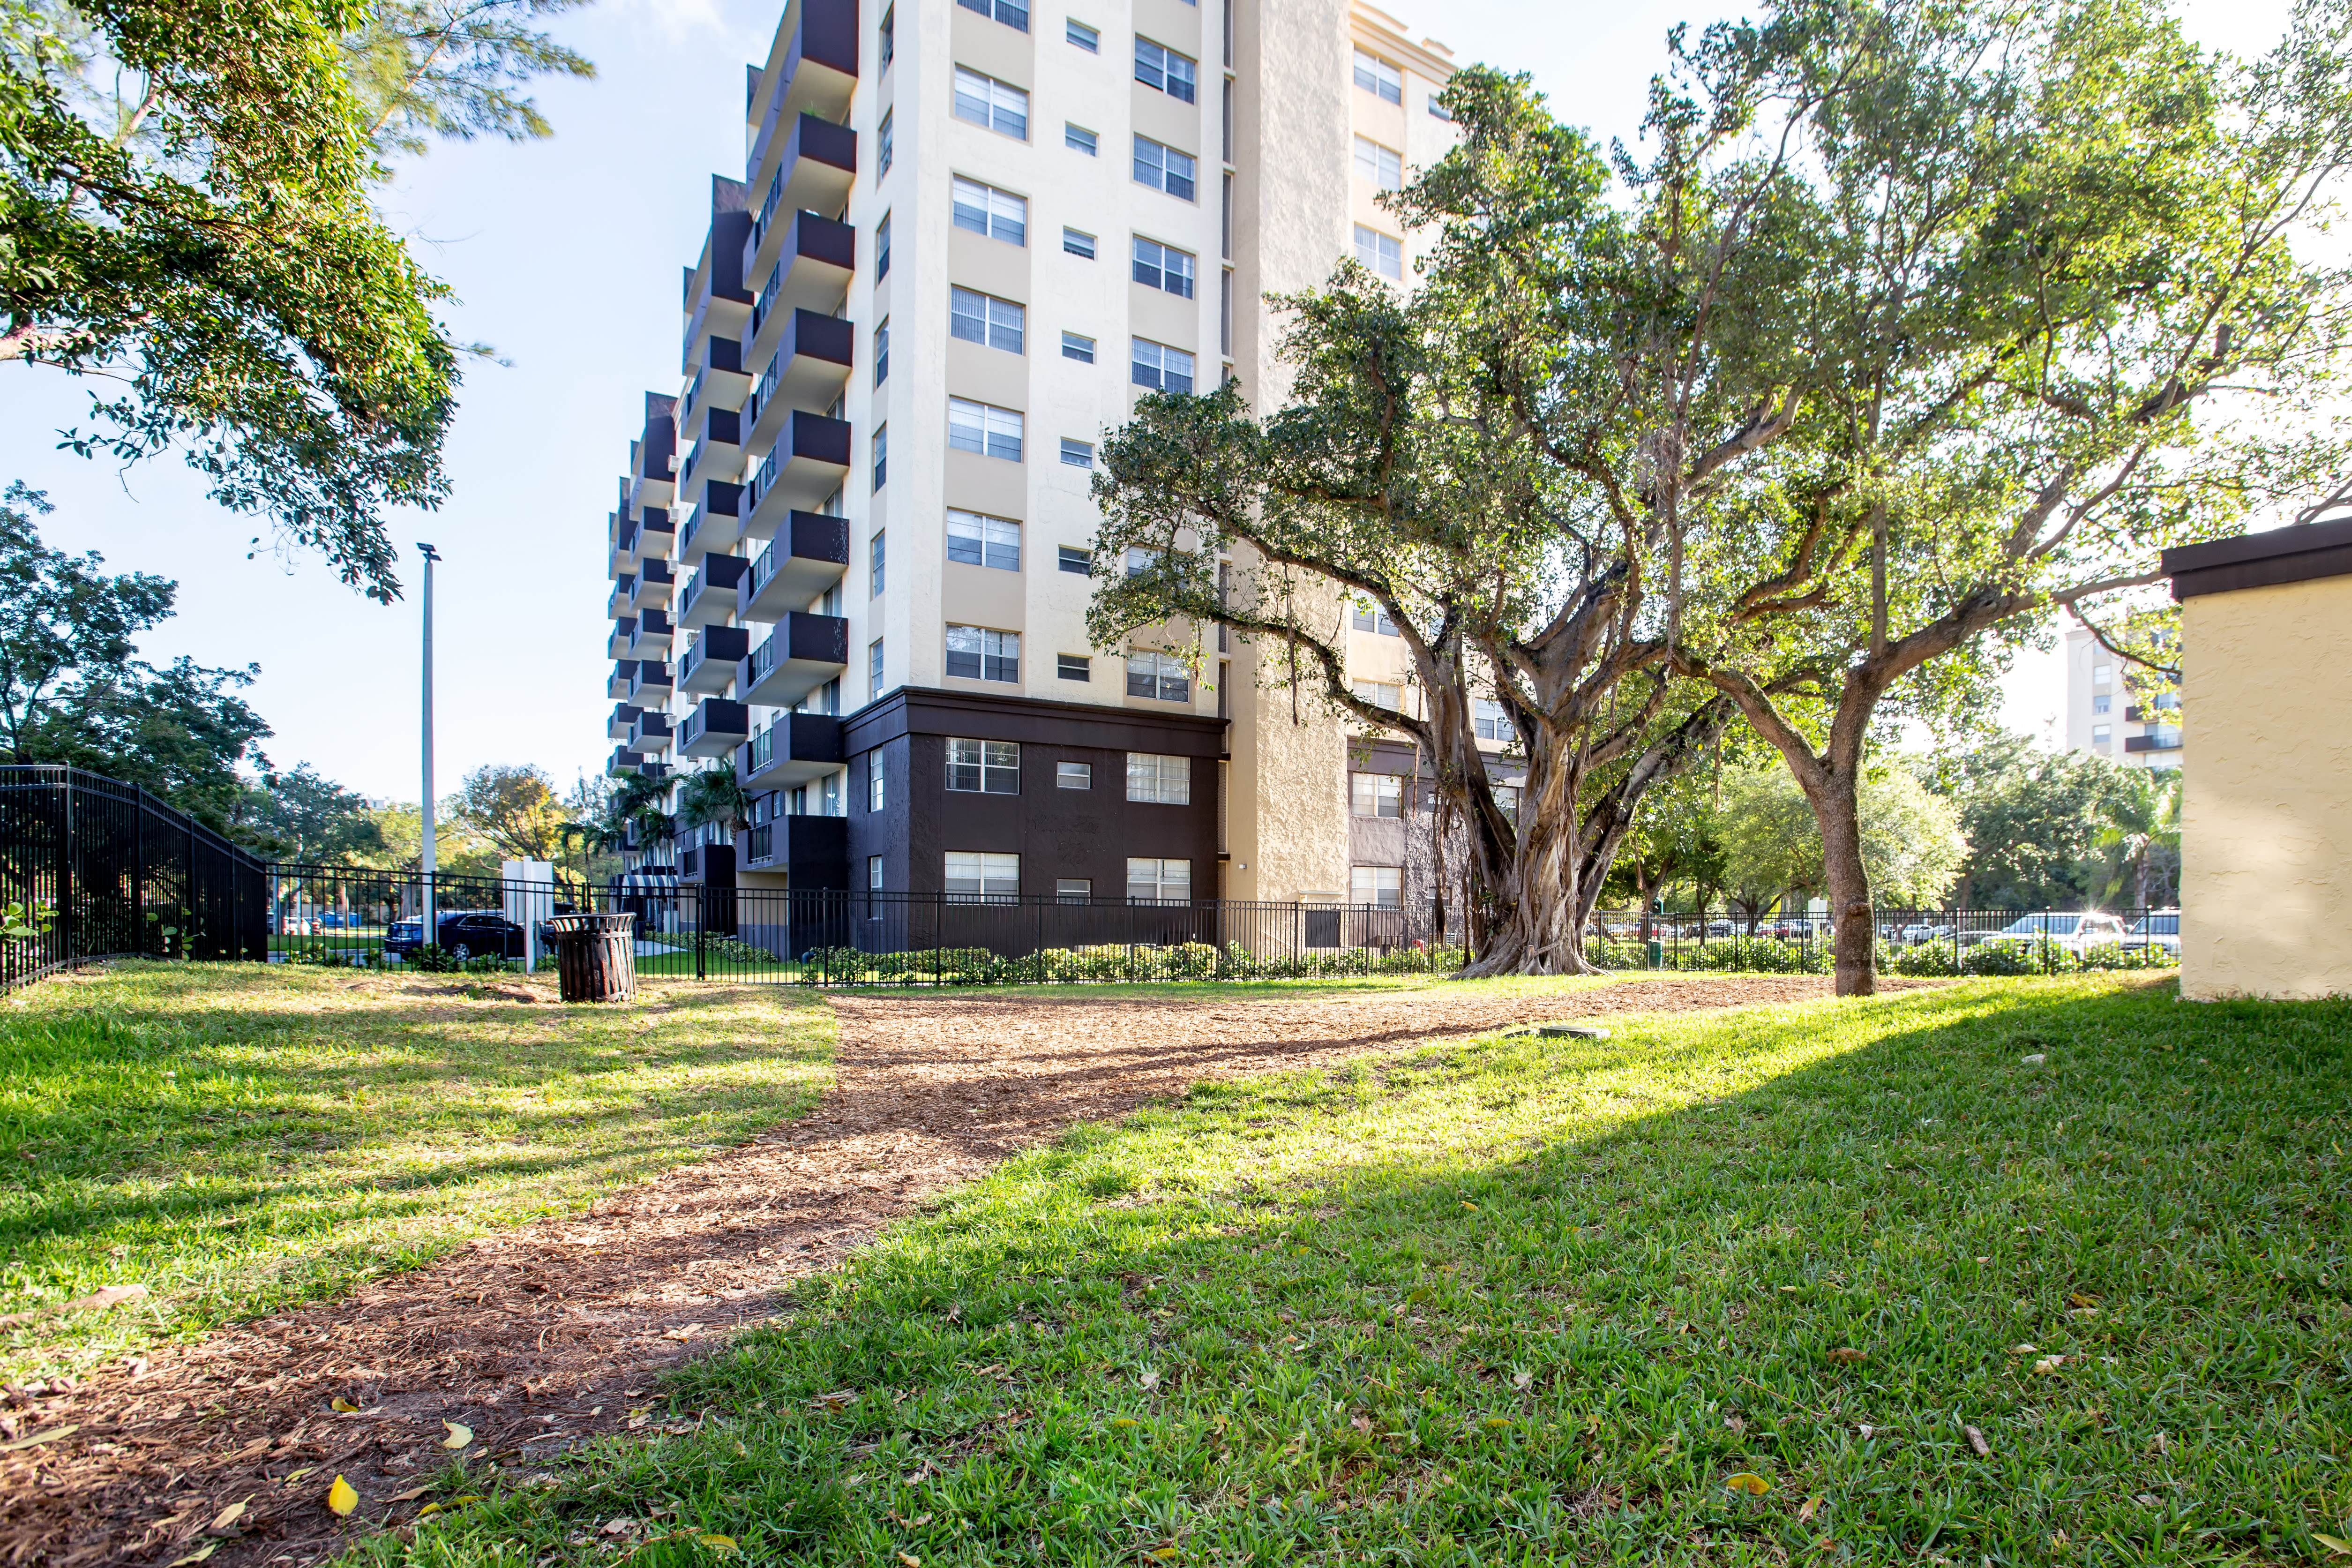 Walking path among well-manicured landscaping and mature trees at Aliro Apartments in North Miami, FL